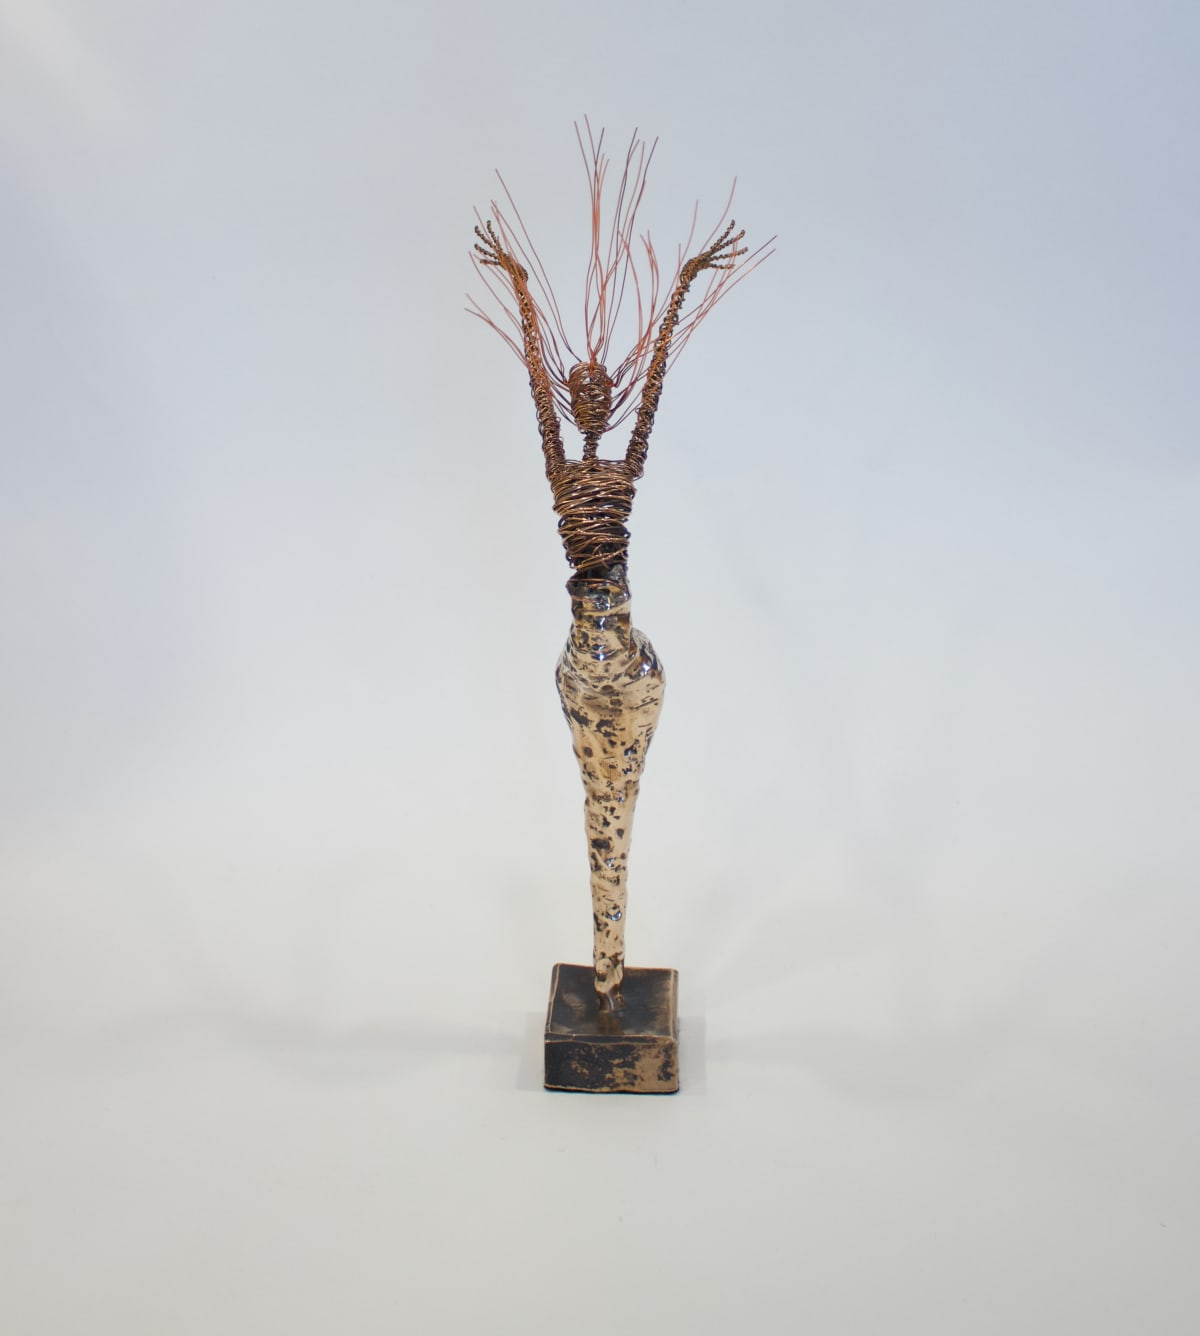 Rachel Ducker Bronze Arms Up, 2019 Bronze & Wire Sculpture 45 x 32 x 20 cm 17 3/4 x 12 5/8 x 7 7/8 in